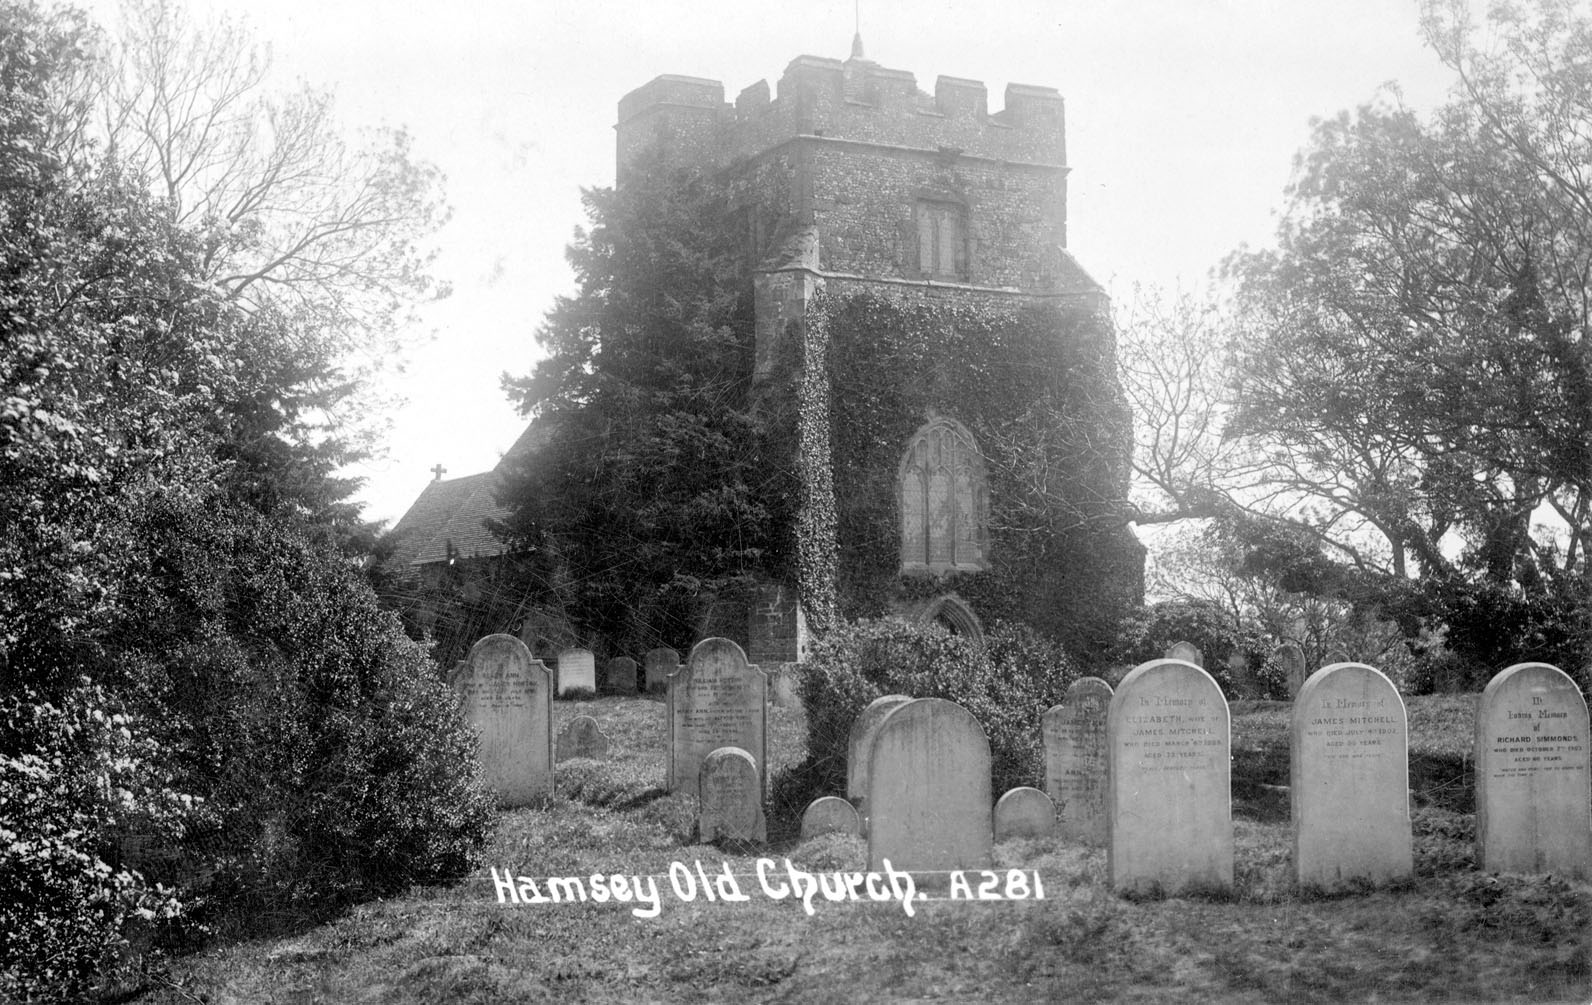 Old graveyard in the early 1900s